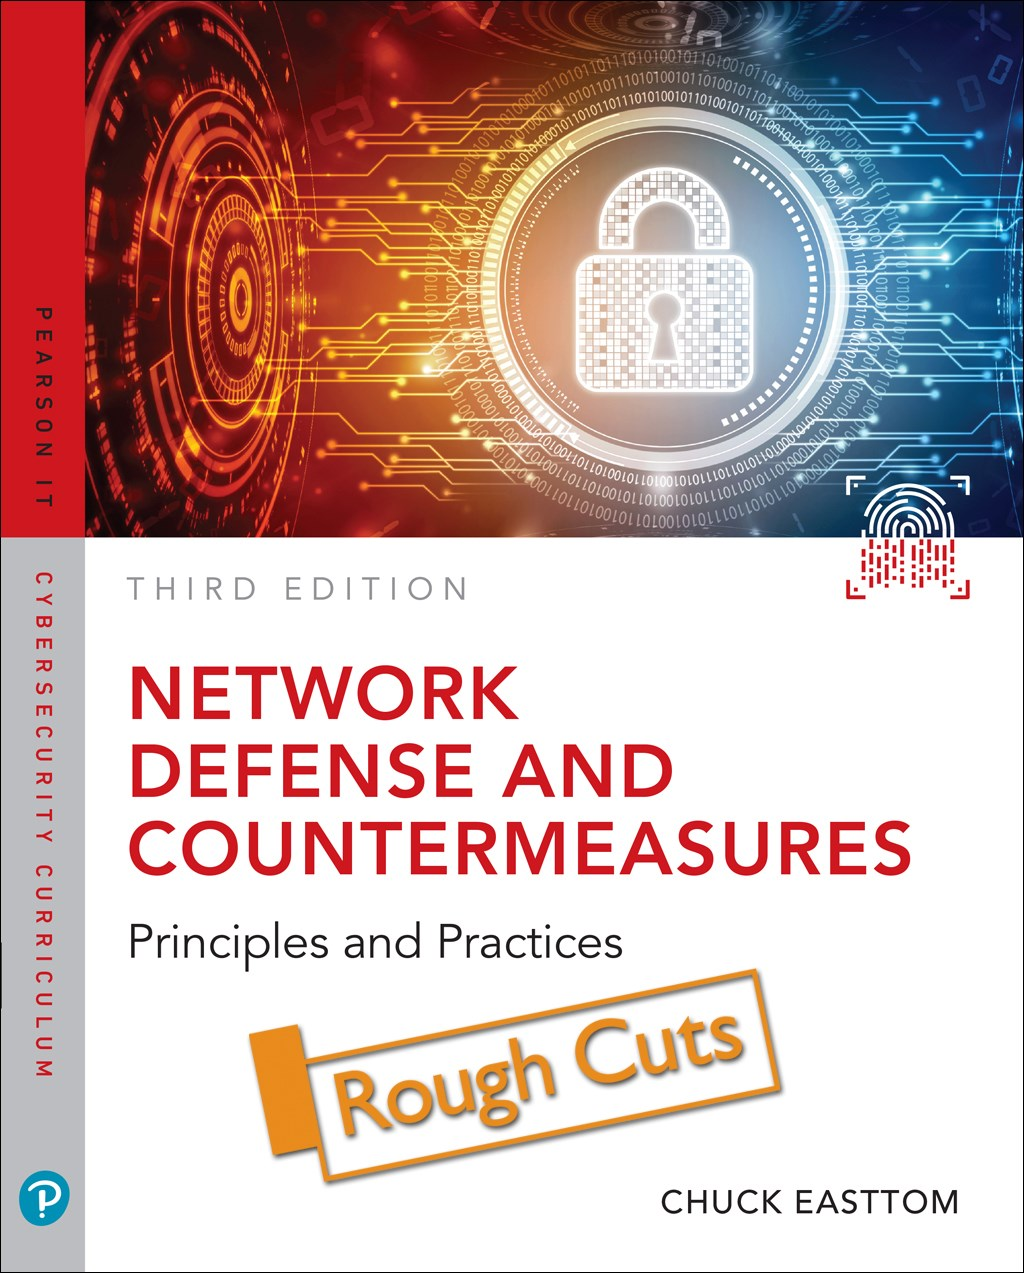 Network Defense and Countermeasures: Principles and Practices, Rough Cuts, 3rd Edition